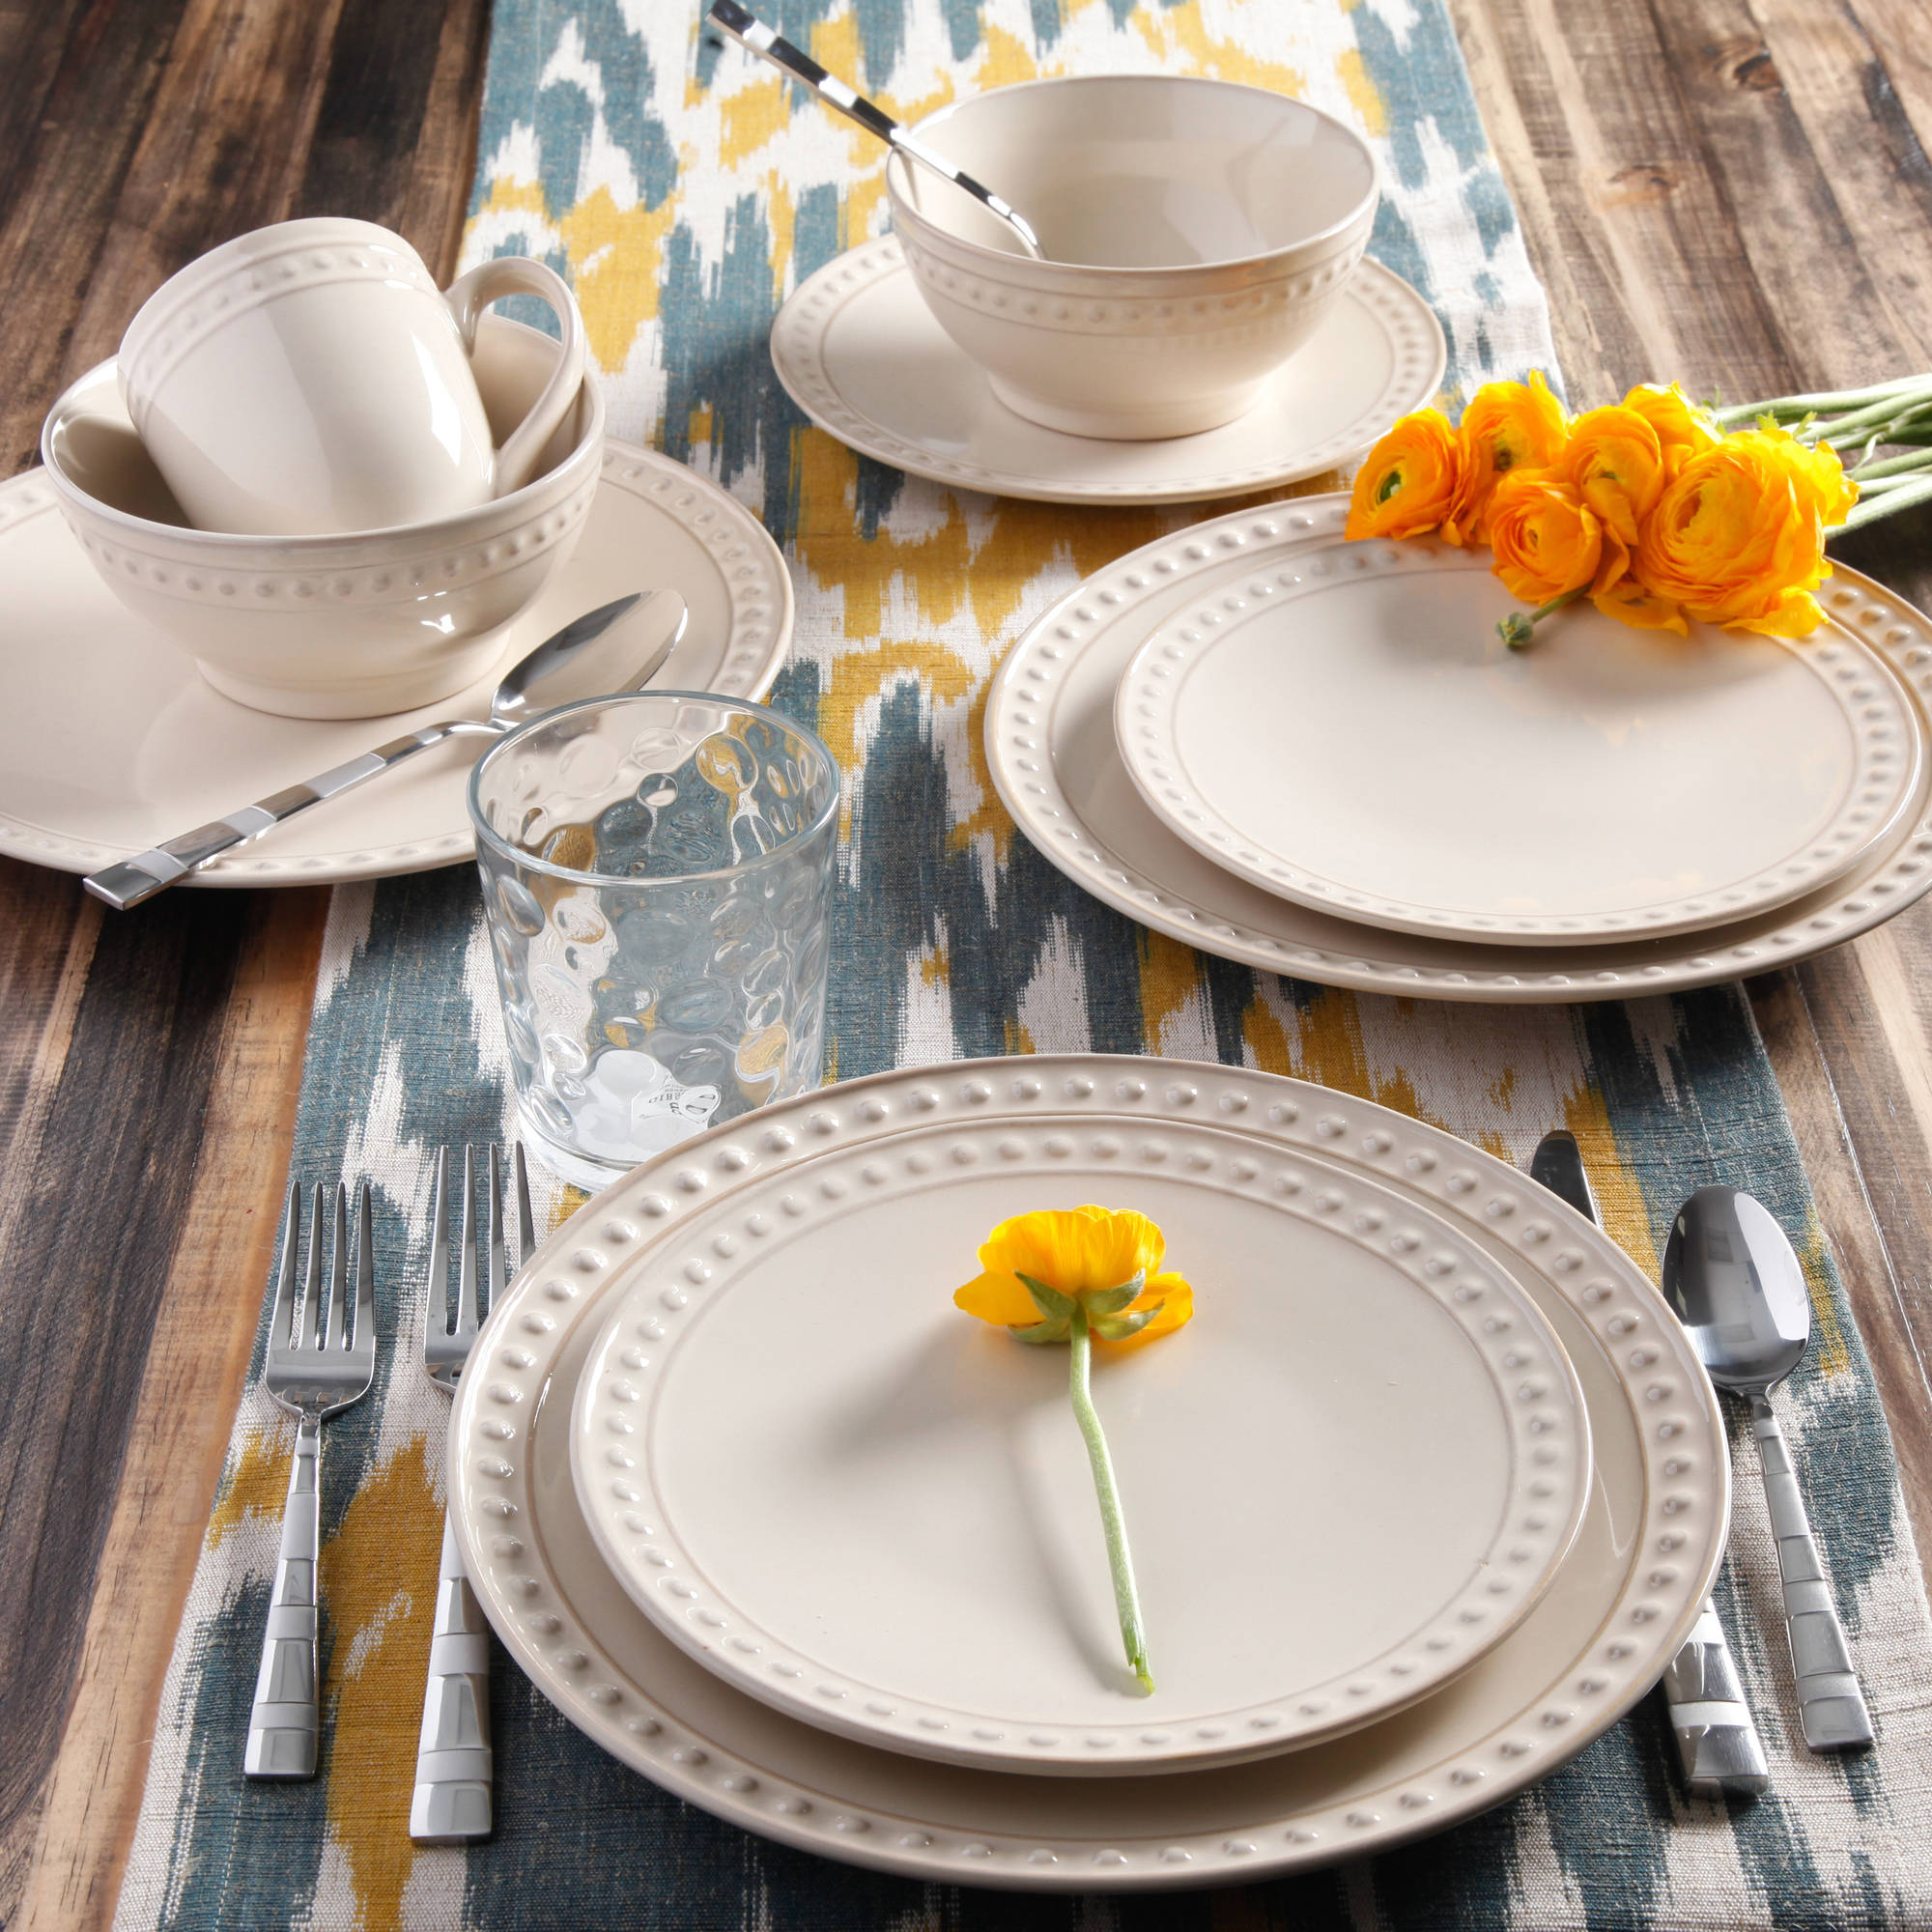 Better Homes And Gardens Amity 16 Piece Dinnerware Set   Walmart.com